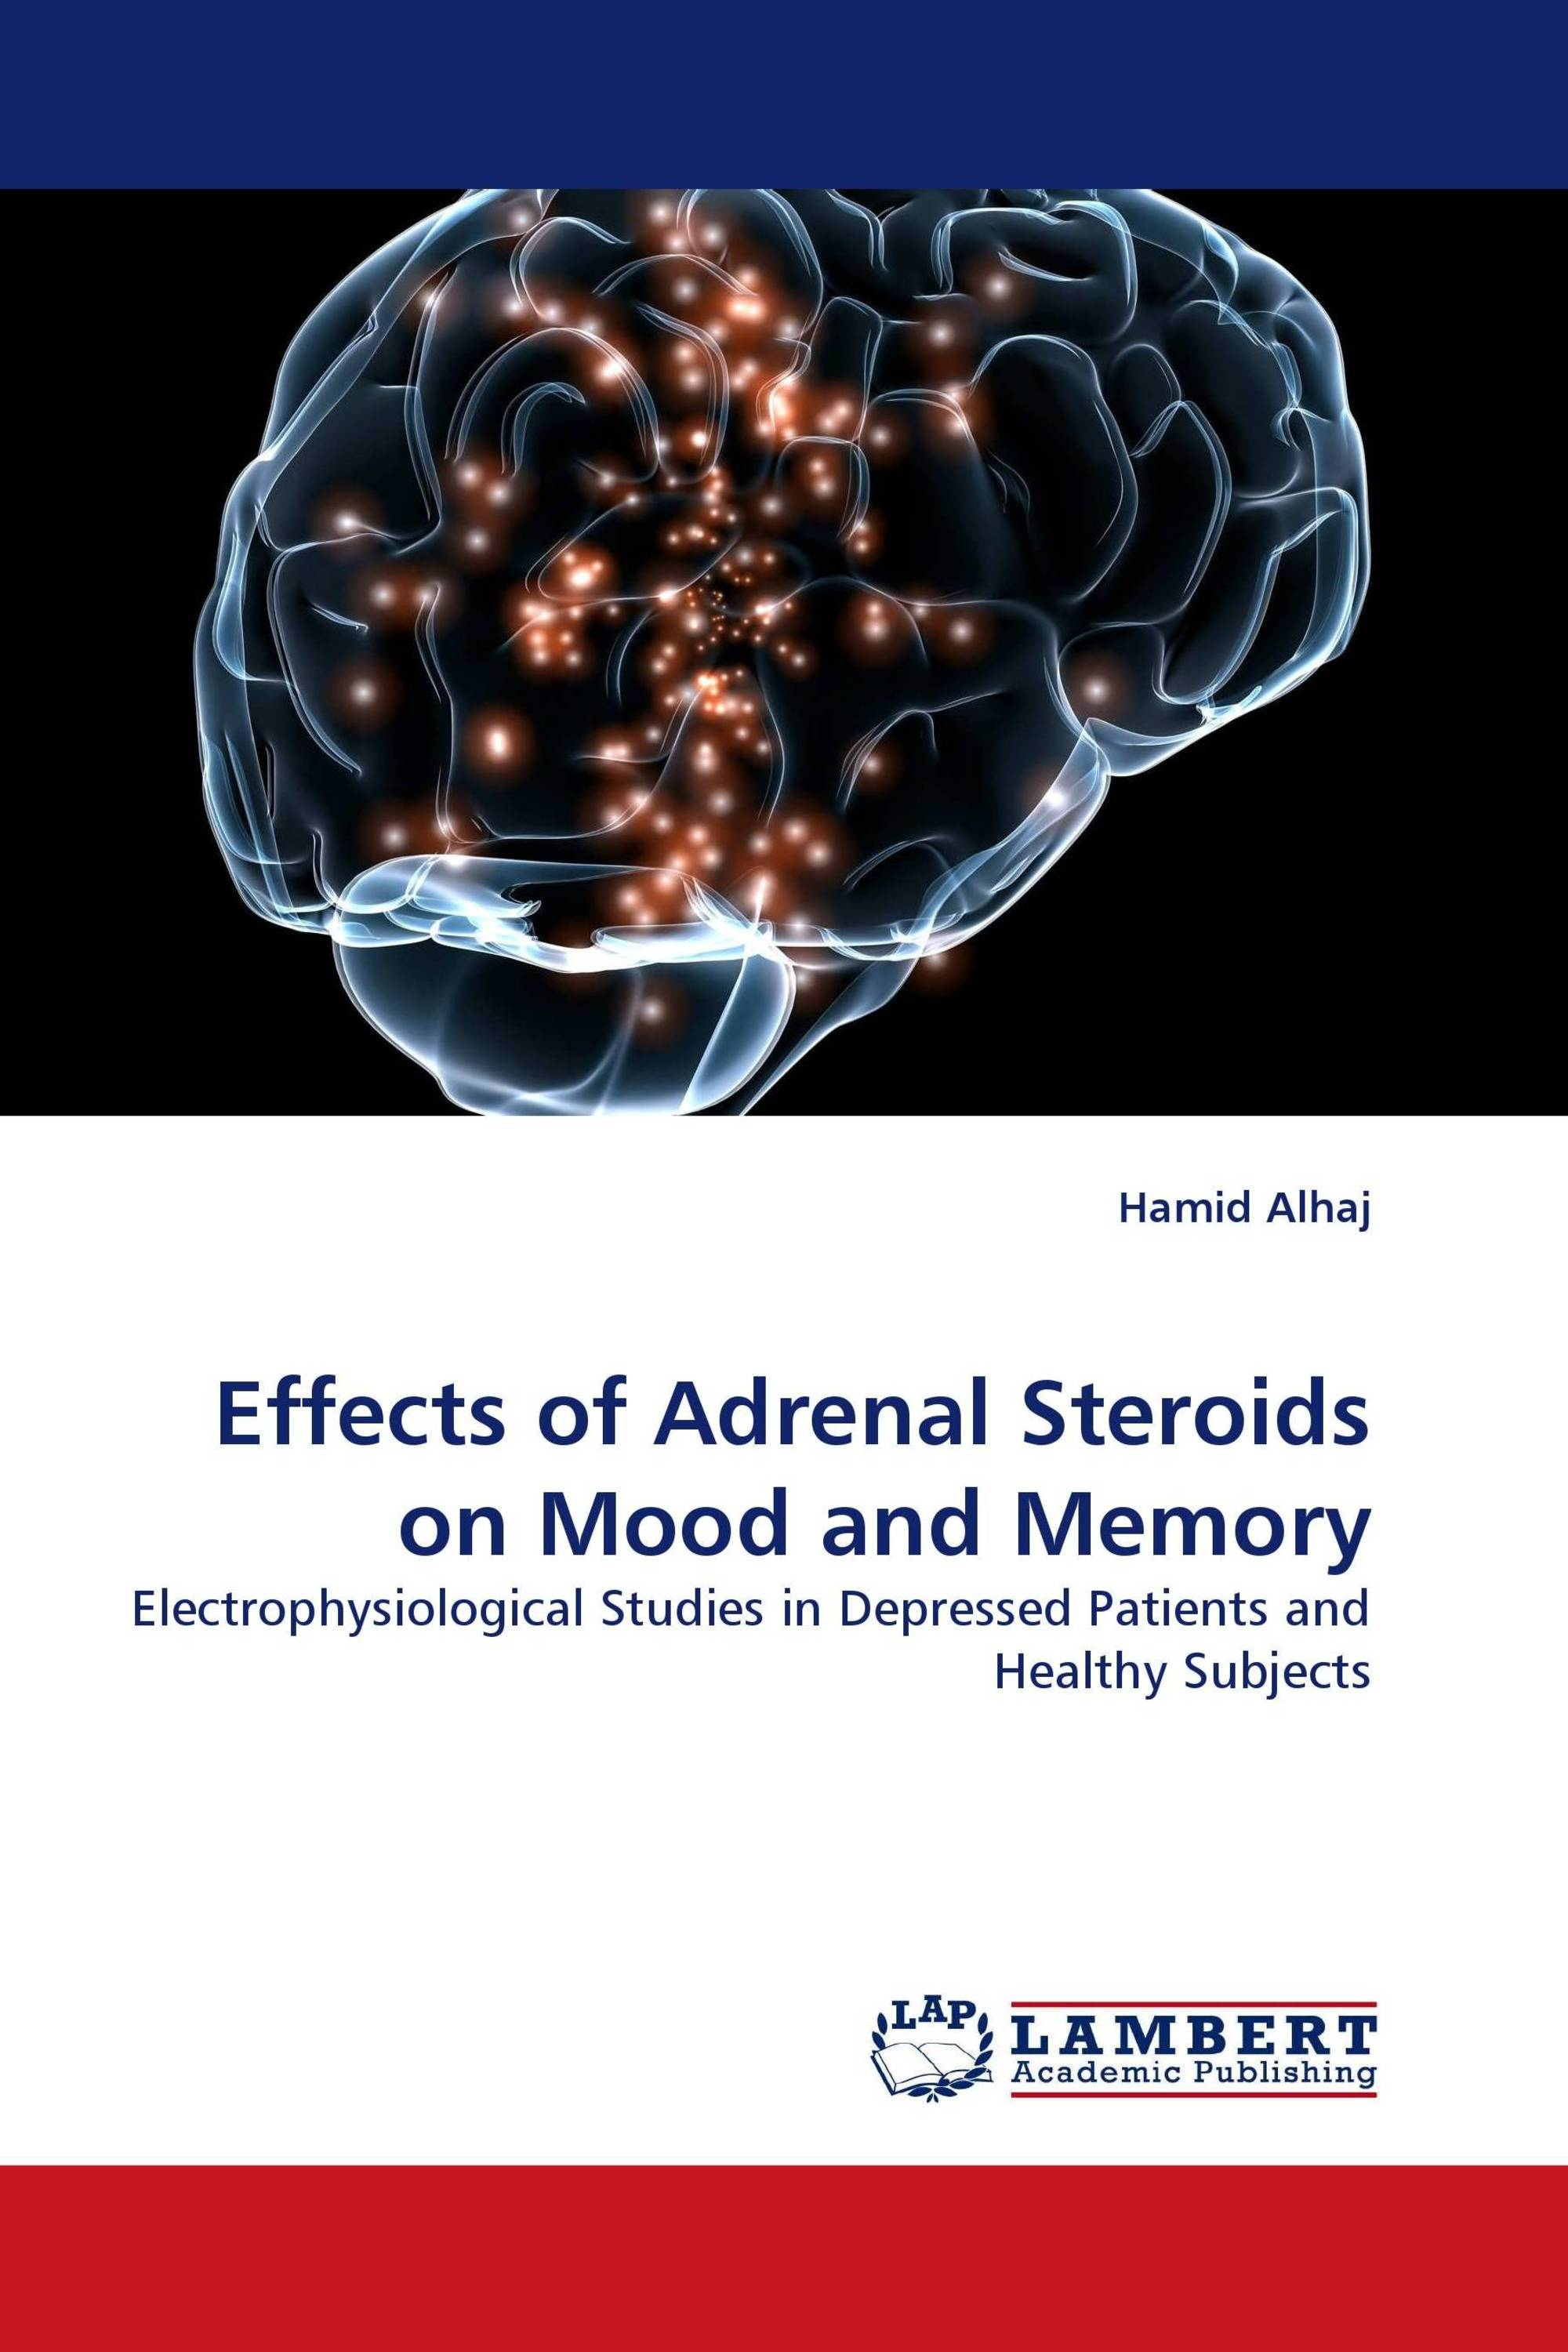 Effects of Adrenal Steroids on Mood and Memory